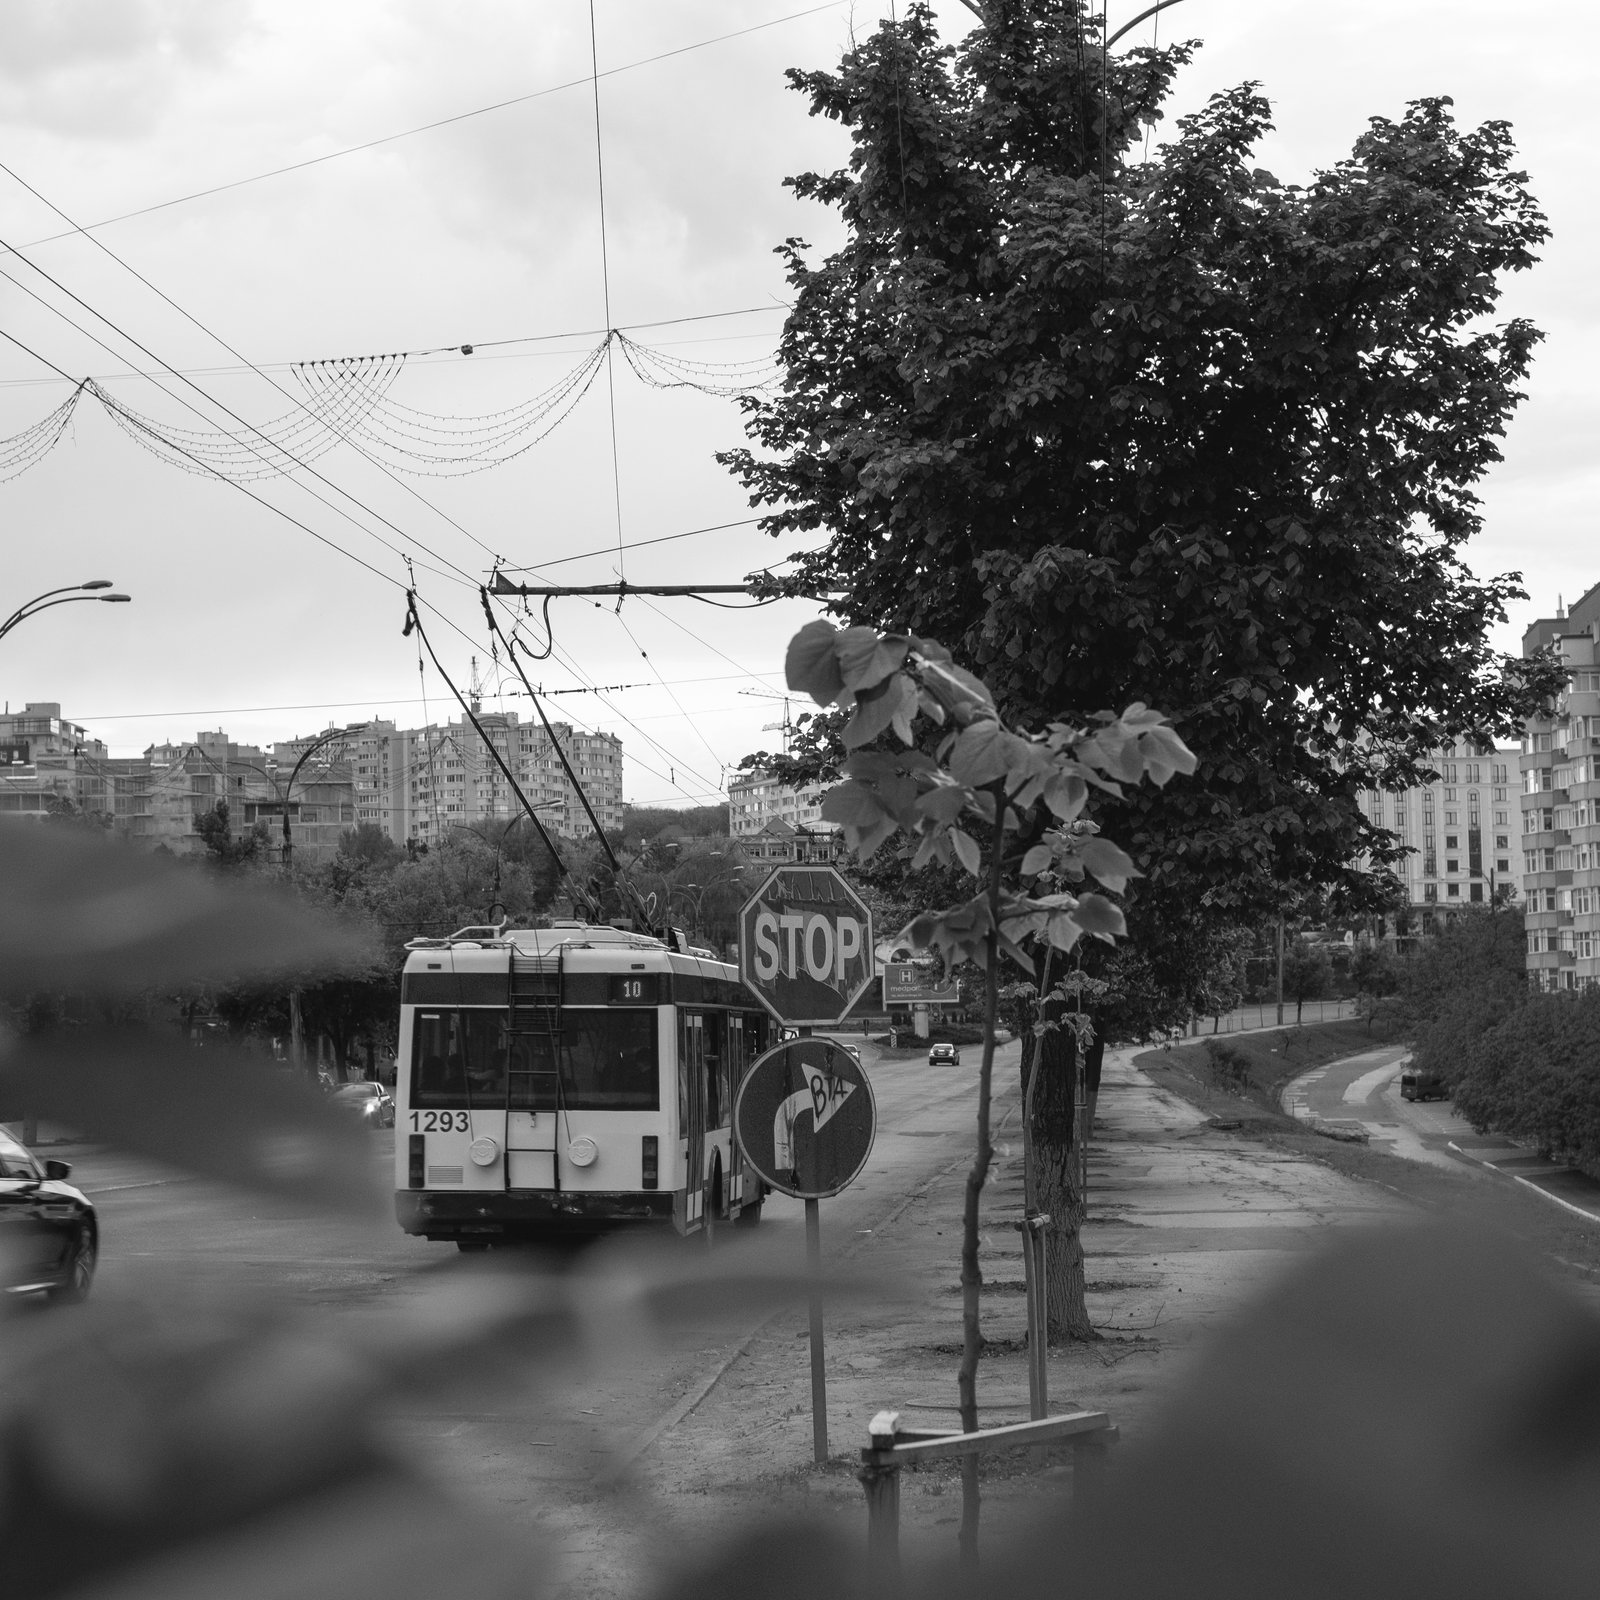 grayscale photo of bus on road